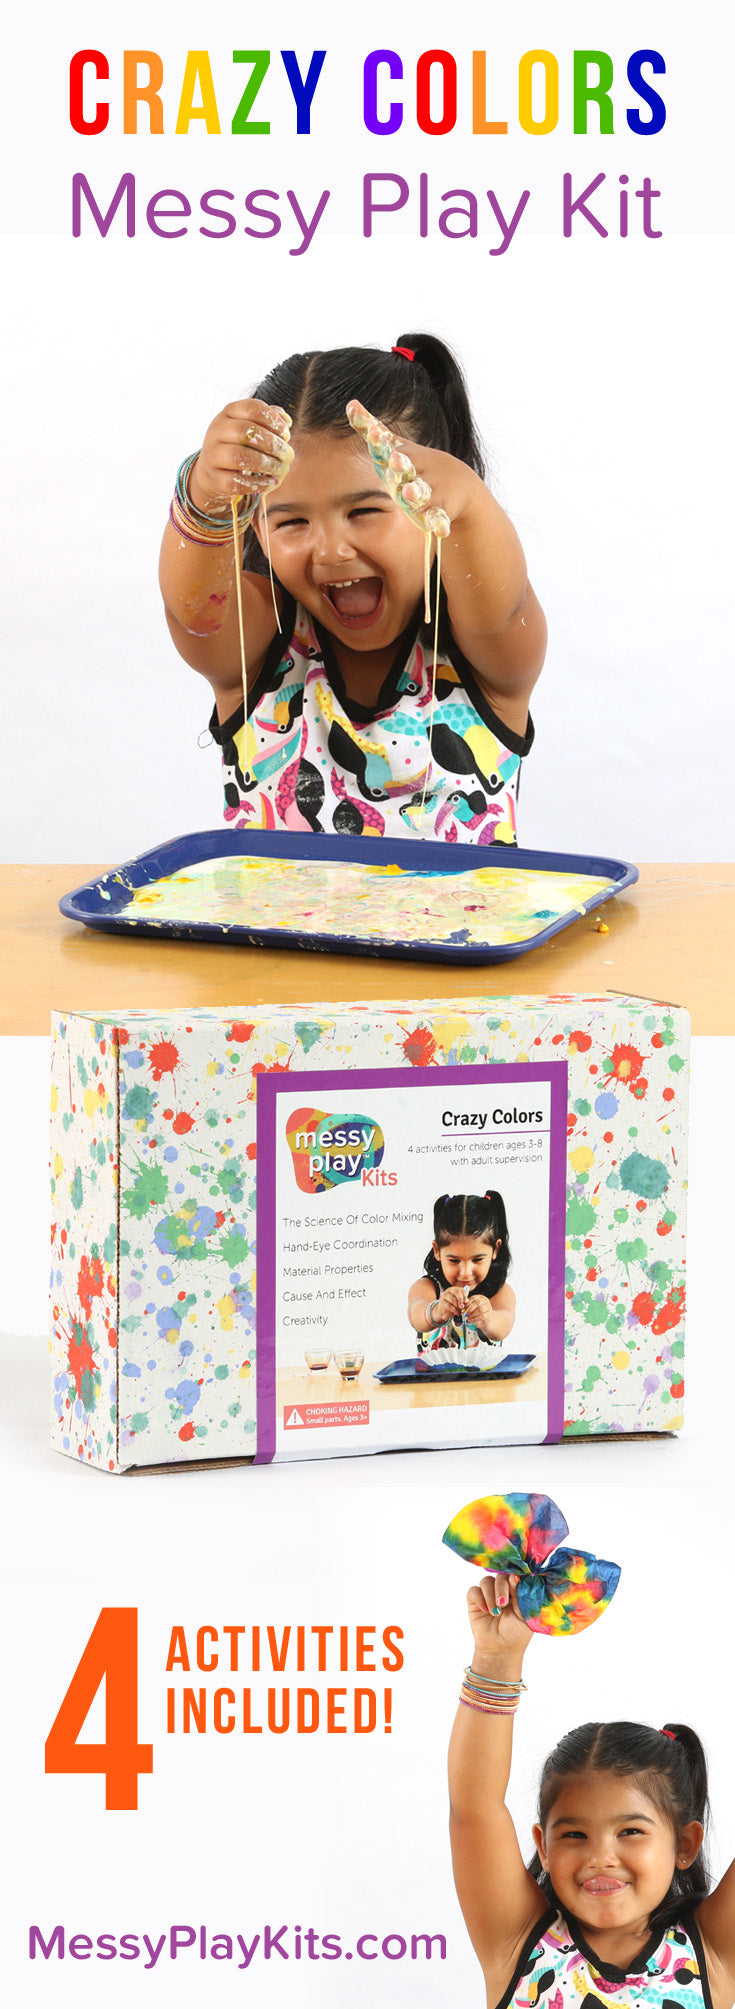 Crazy Colors Messy Play Kits